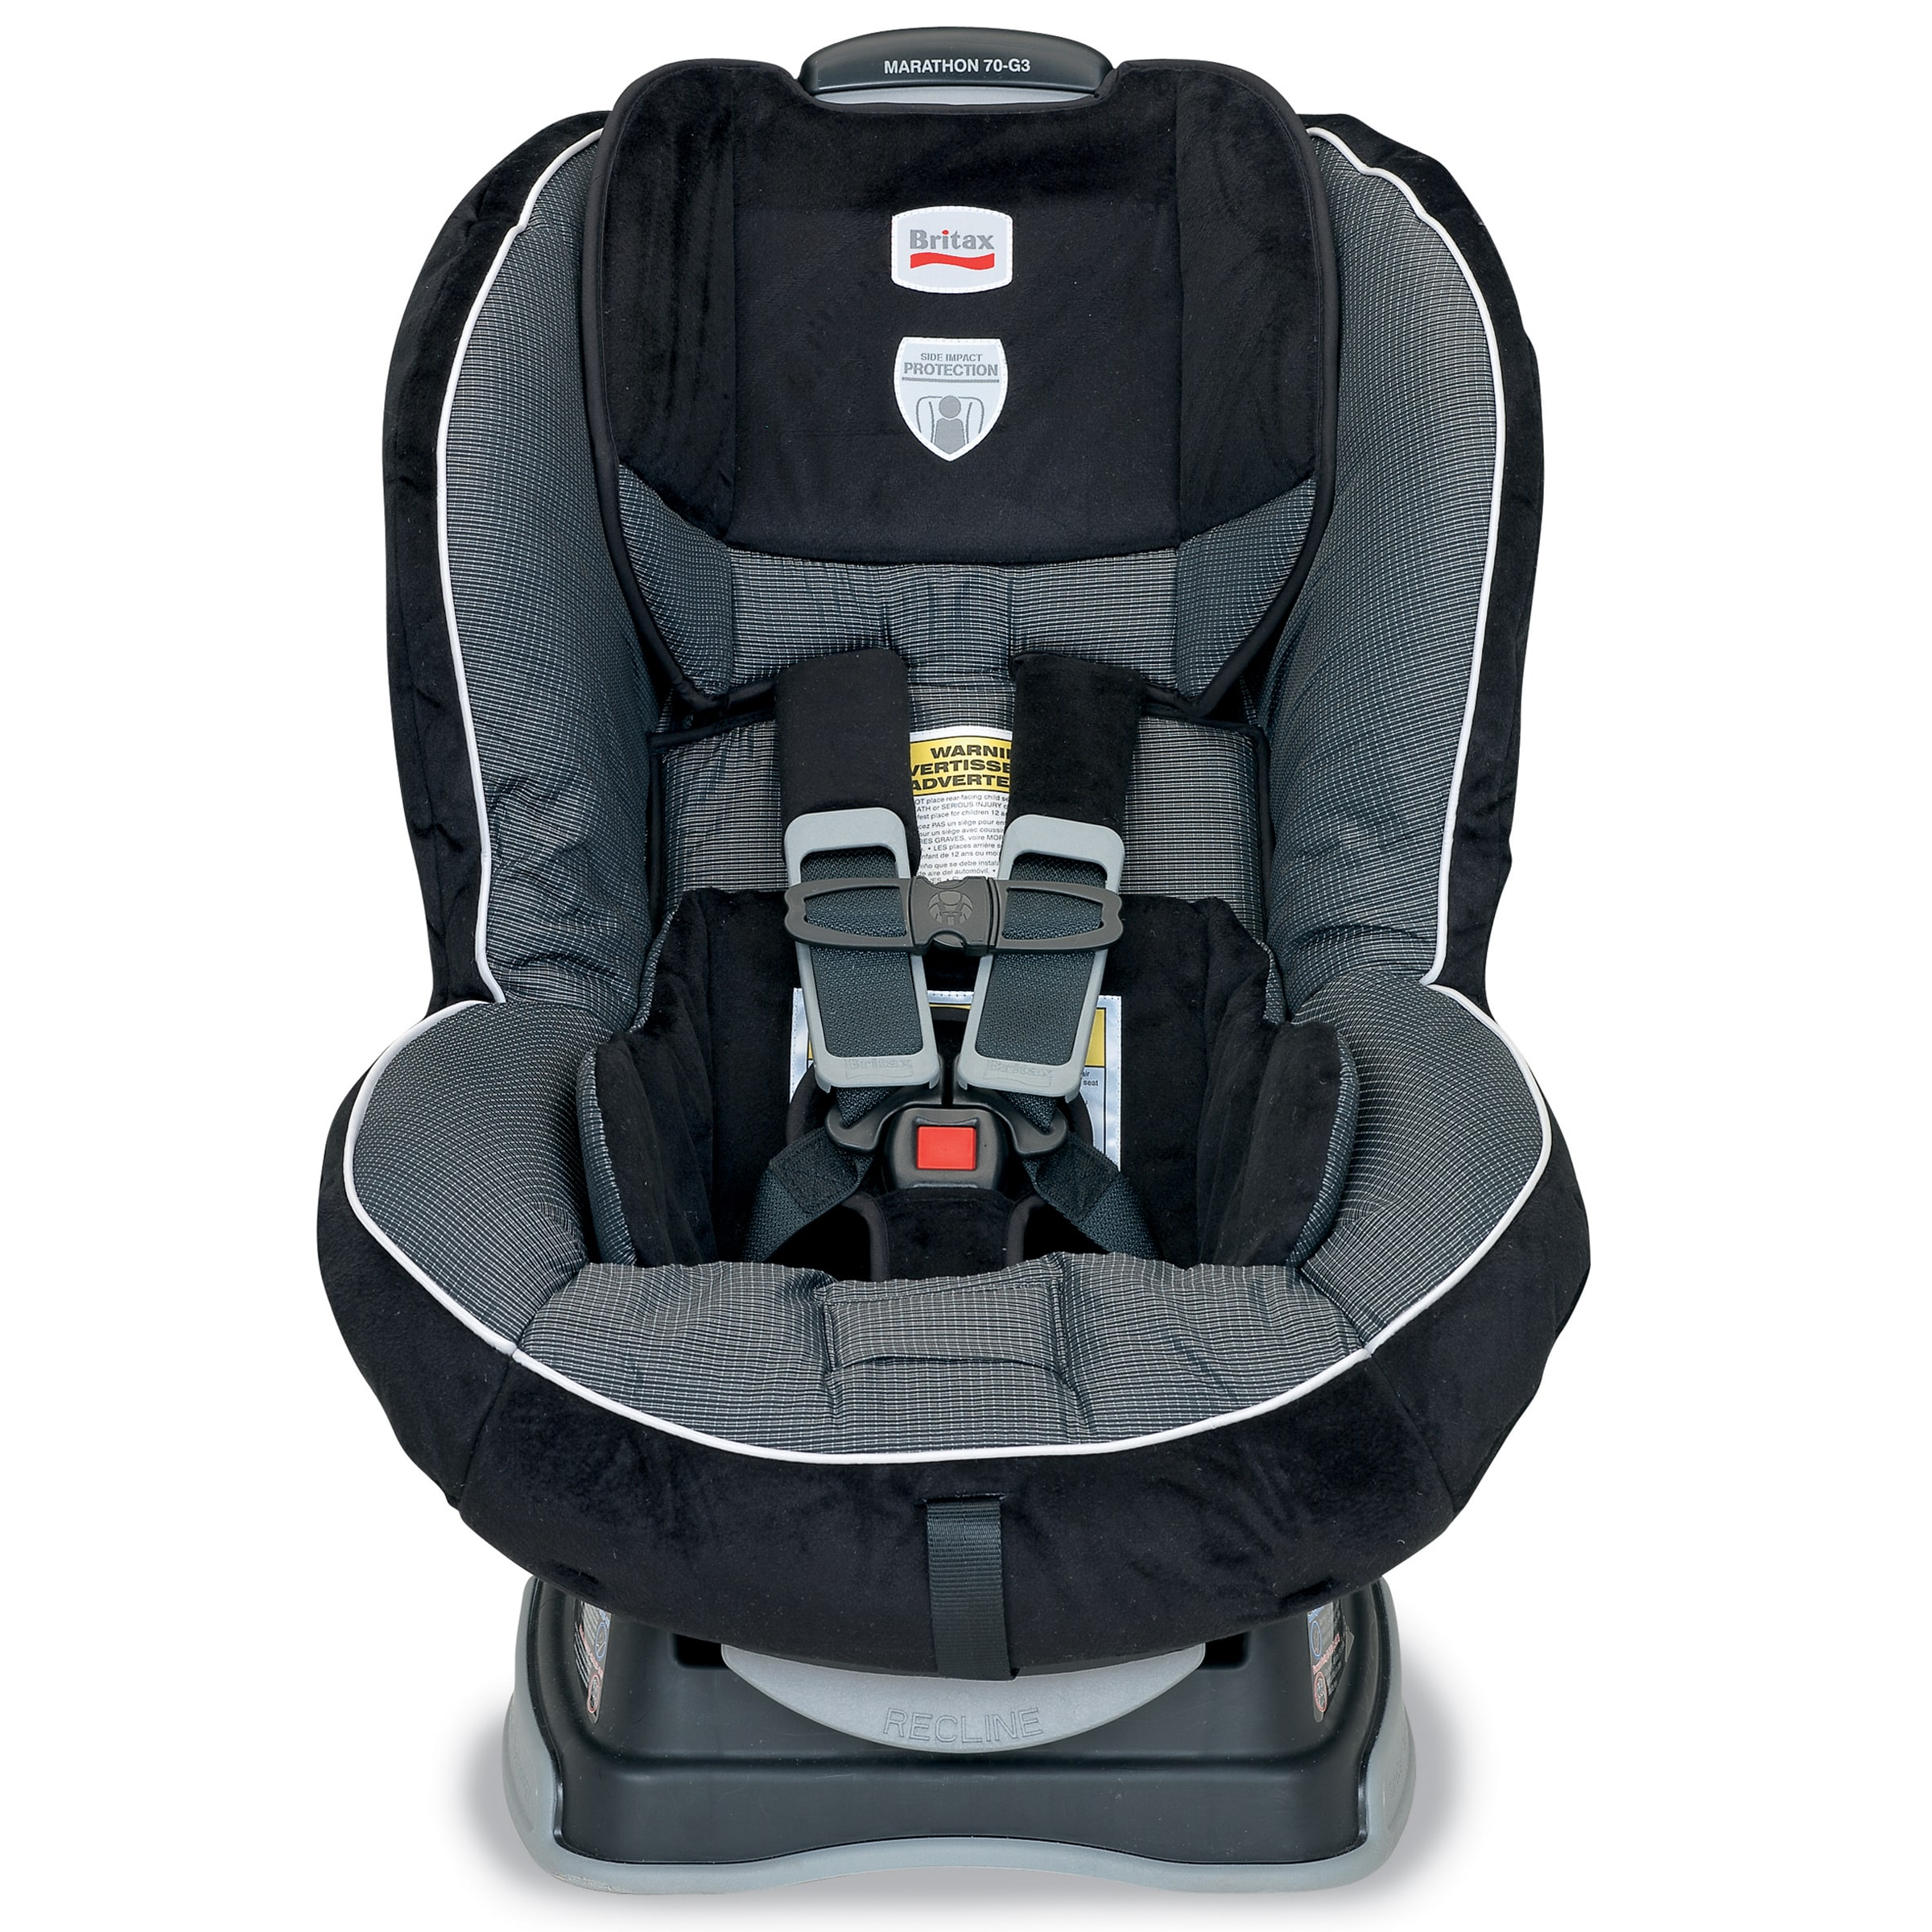 G3 Convertible Car Seat in Onyx